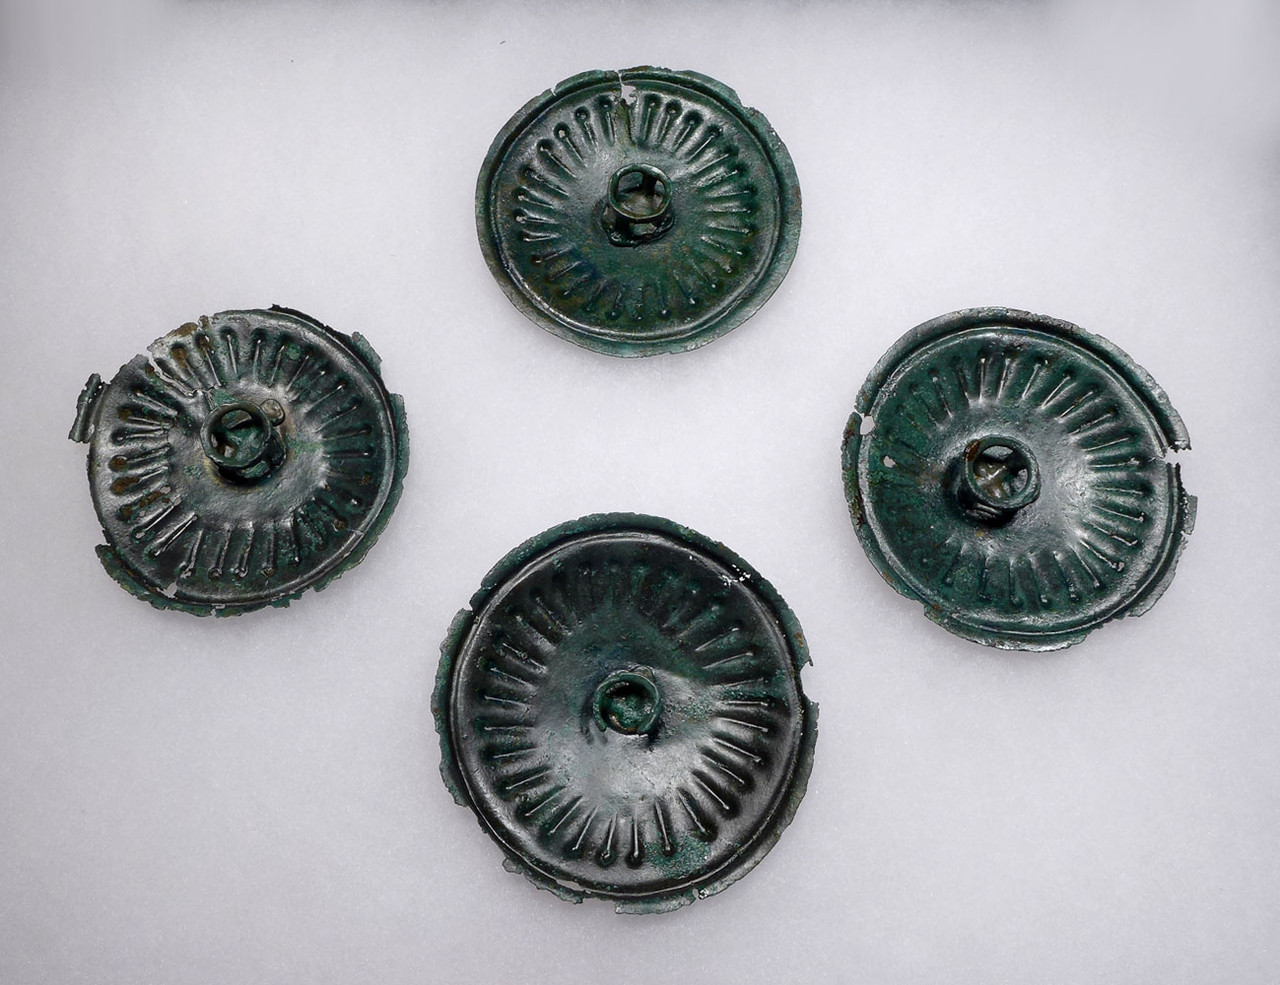 FOUR ANCIENT SASSANIAN PERSIAN CAVALRY BRONZE PHALERAE DISK ORNAMENTS FROM A KNIGHTS HORSE *LUR141